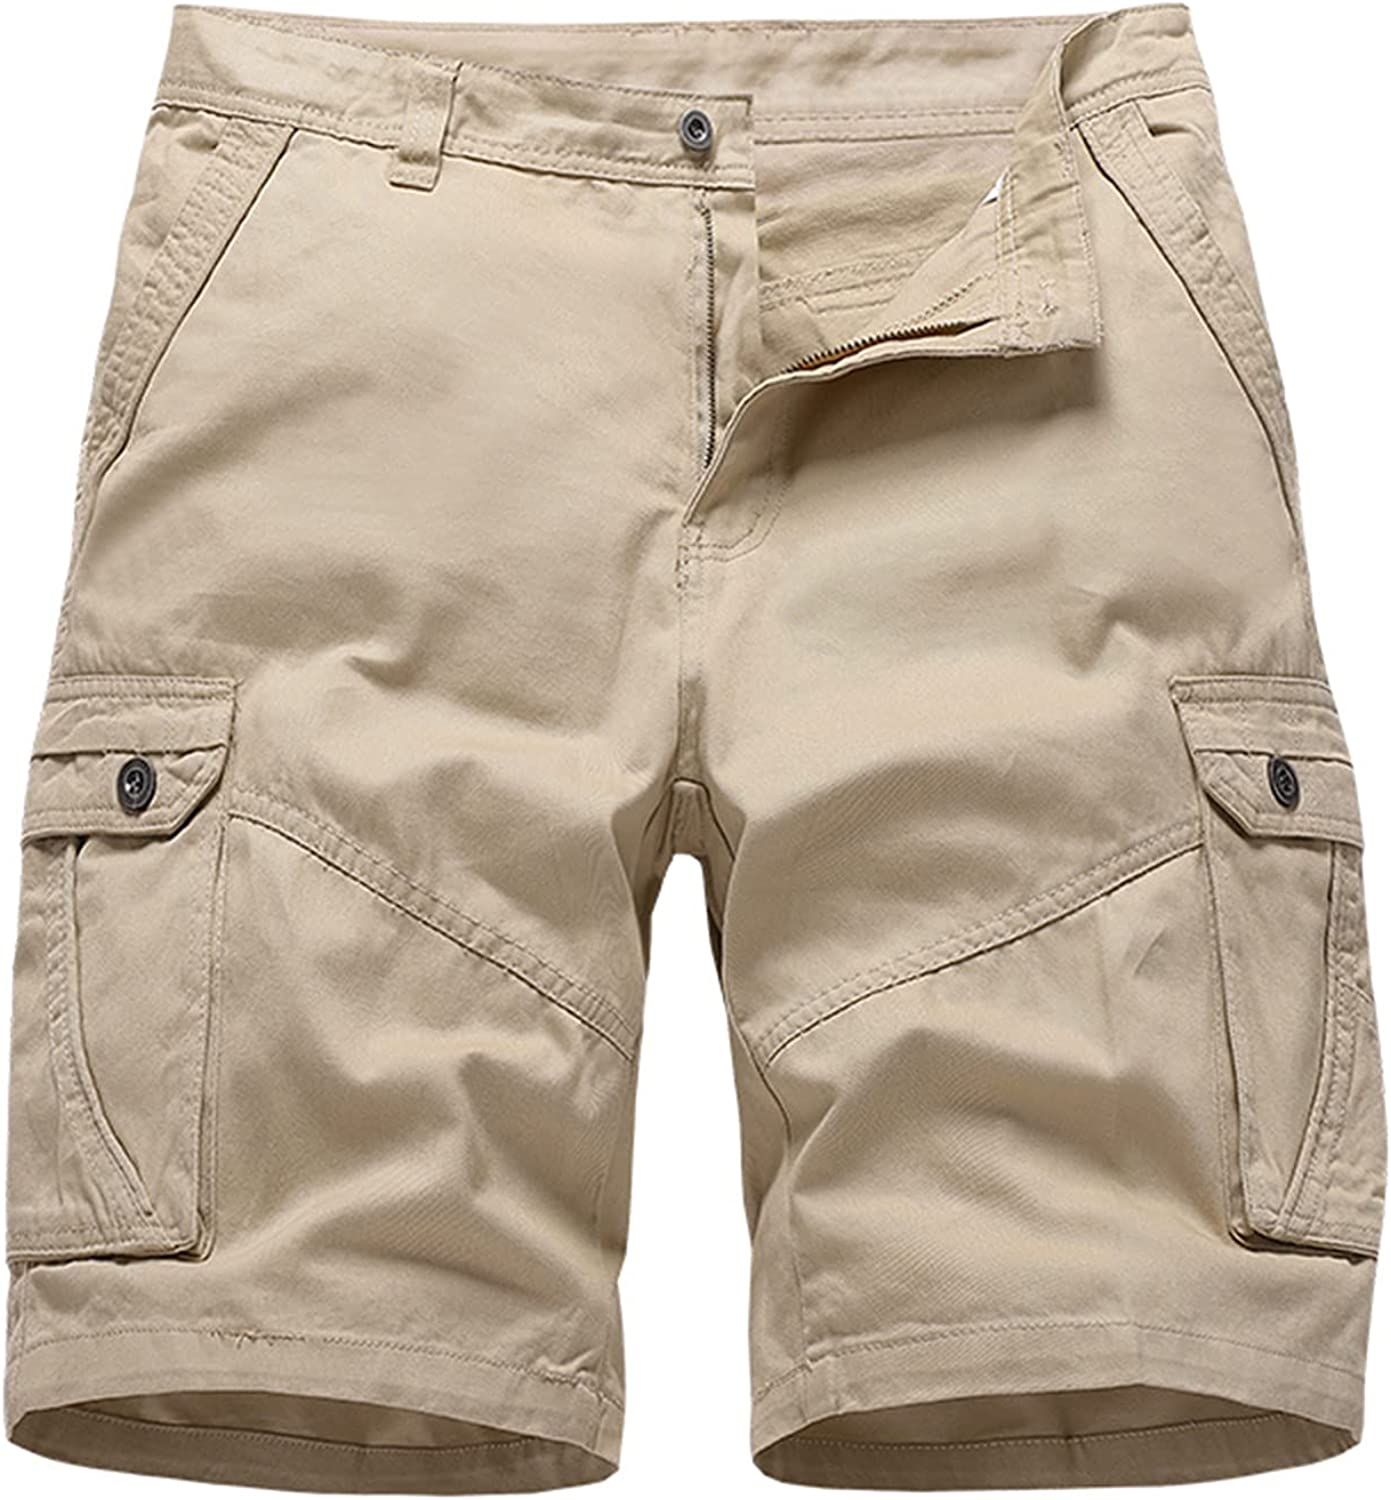 baskuwish Mens Cotton Cargo Shorts Relaxed Fit Multi-Pocket Outdoor Shorts